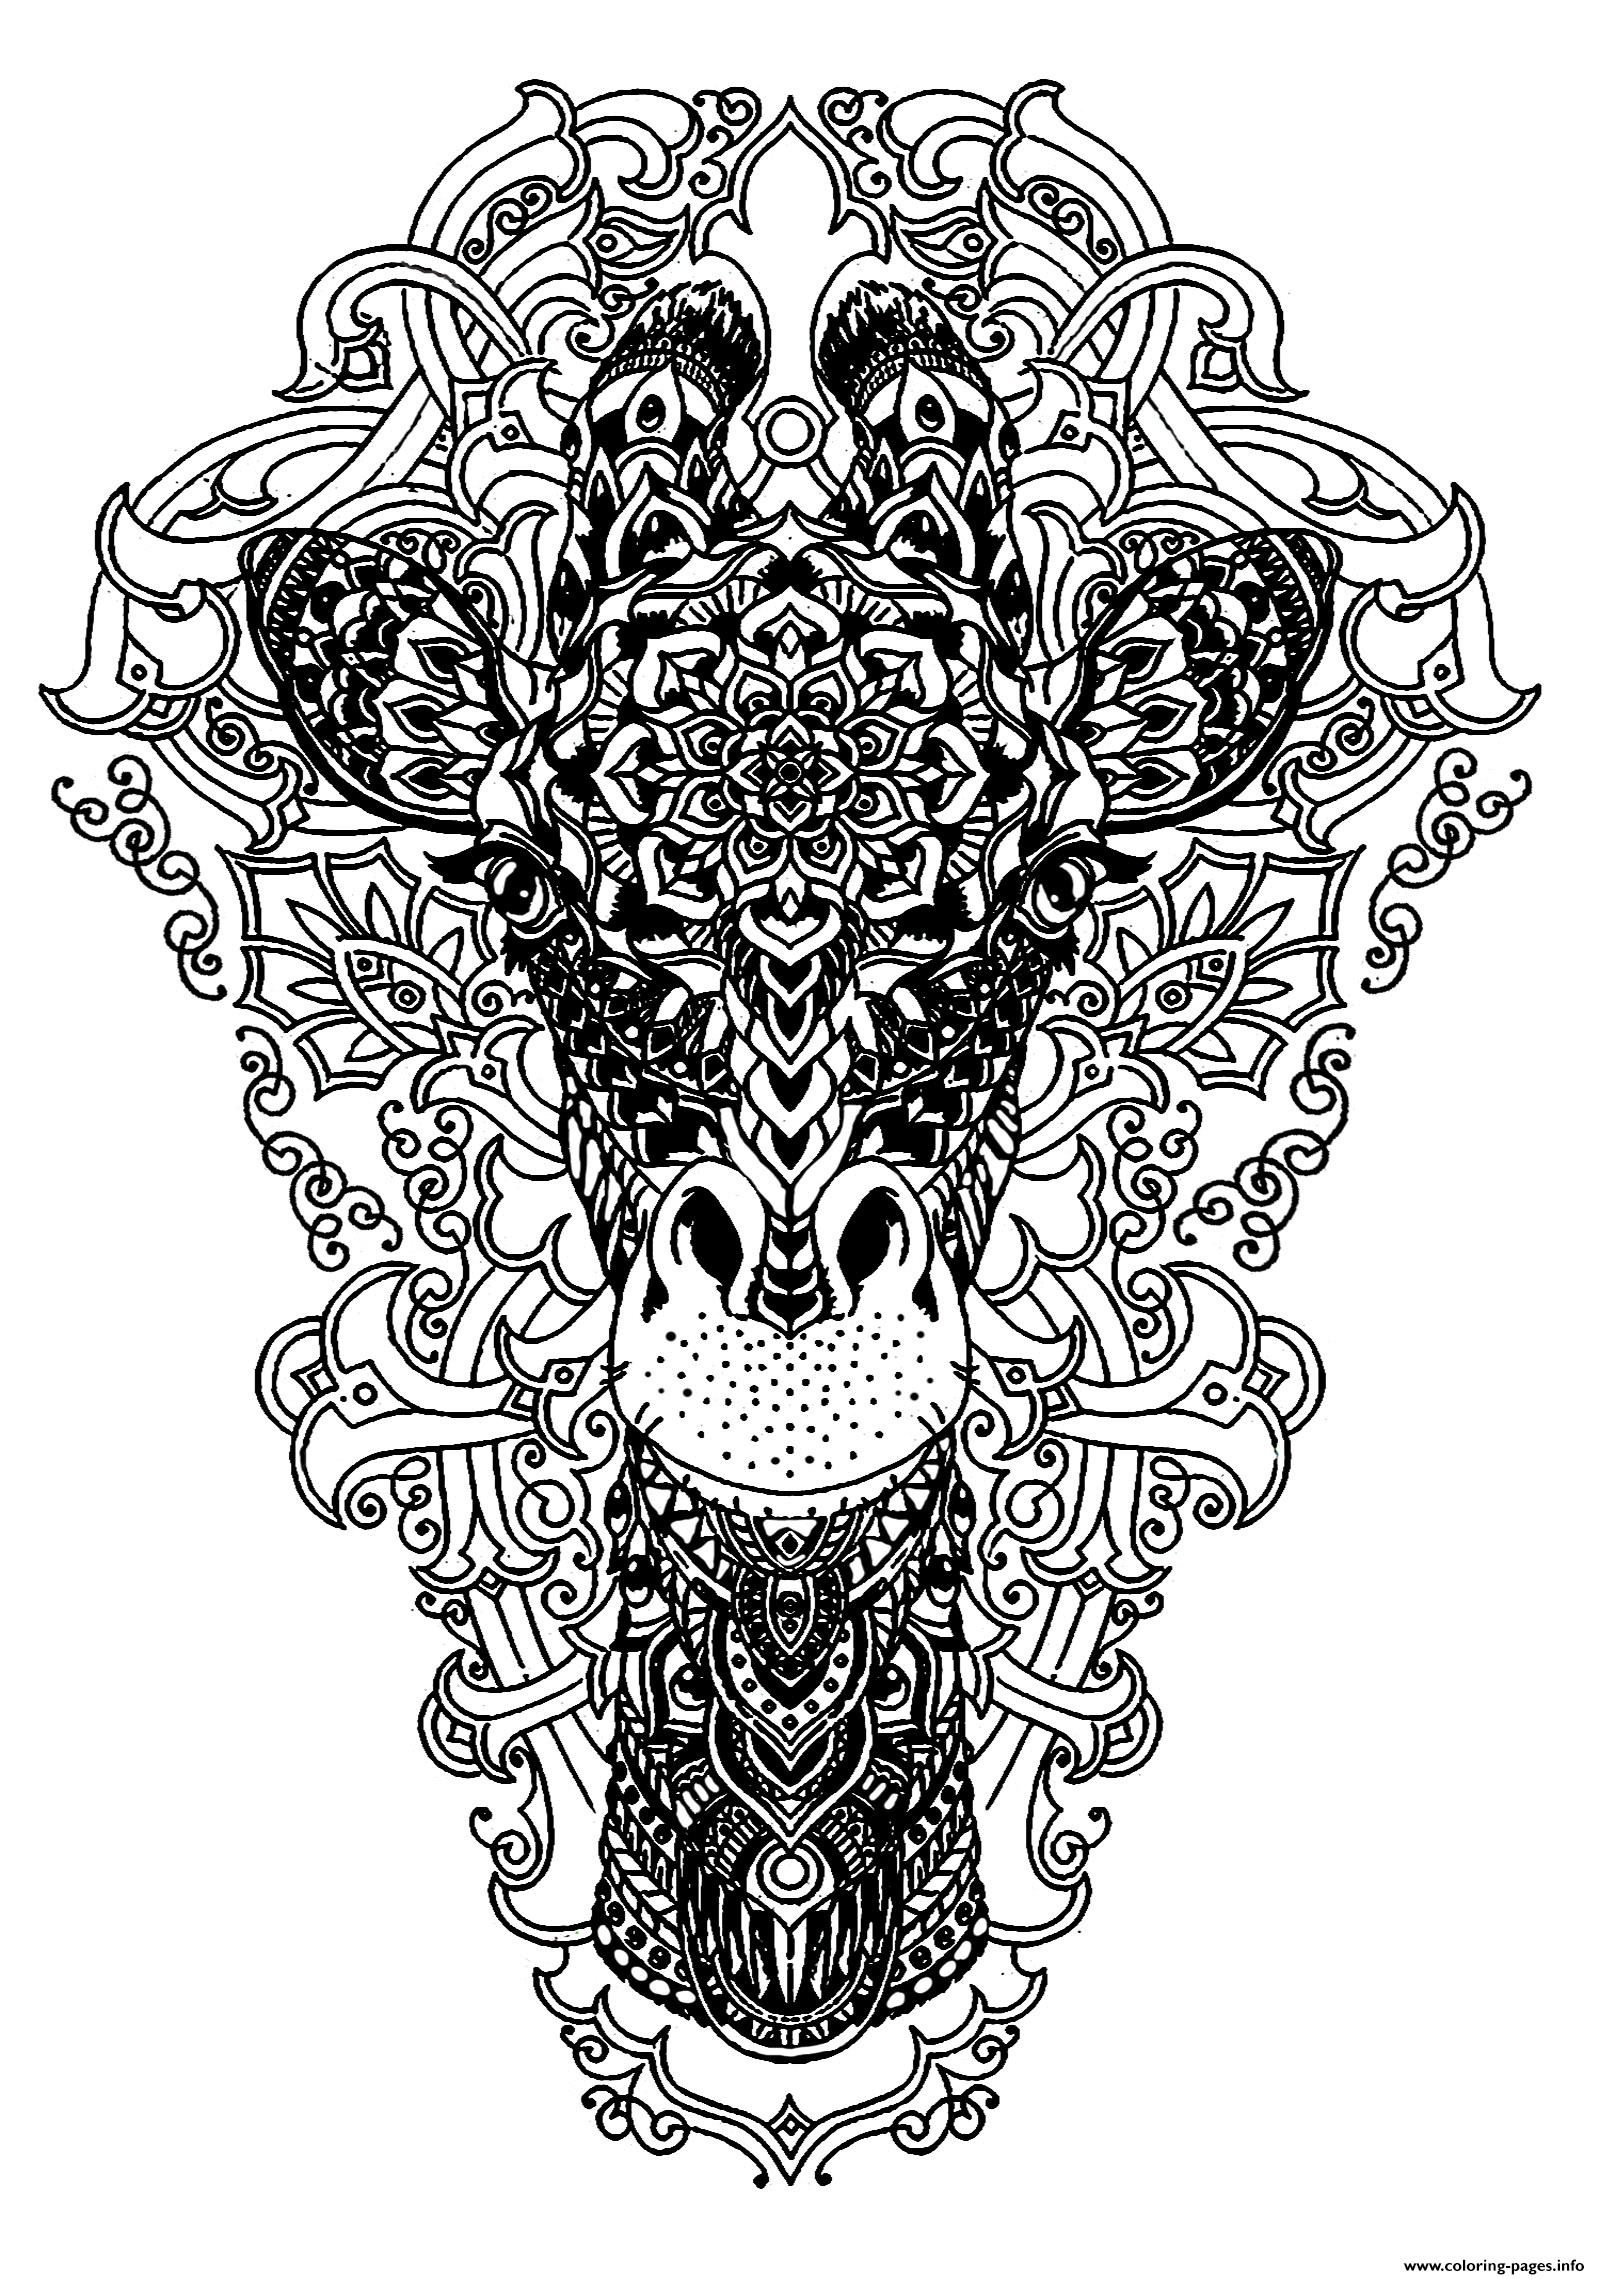 advanced animal coloring pages advanced coloring pages of animals at getdrawings free coloring animal pages advanced